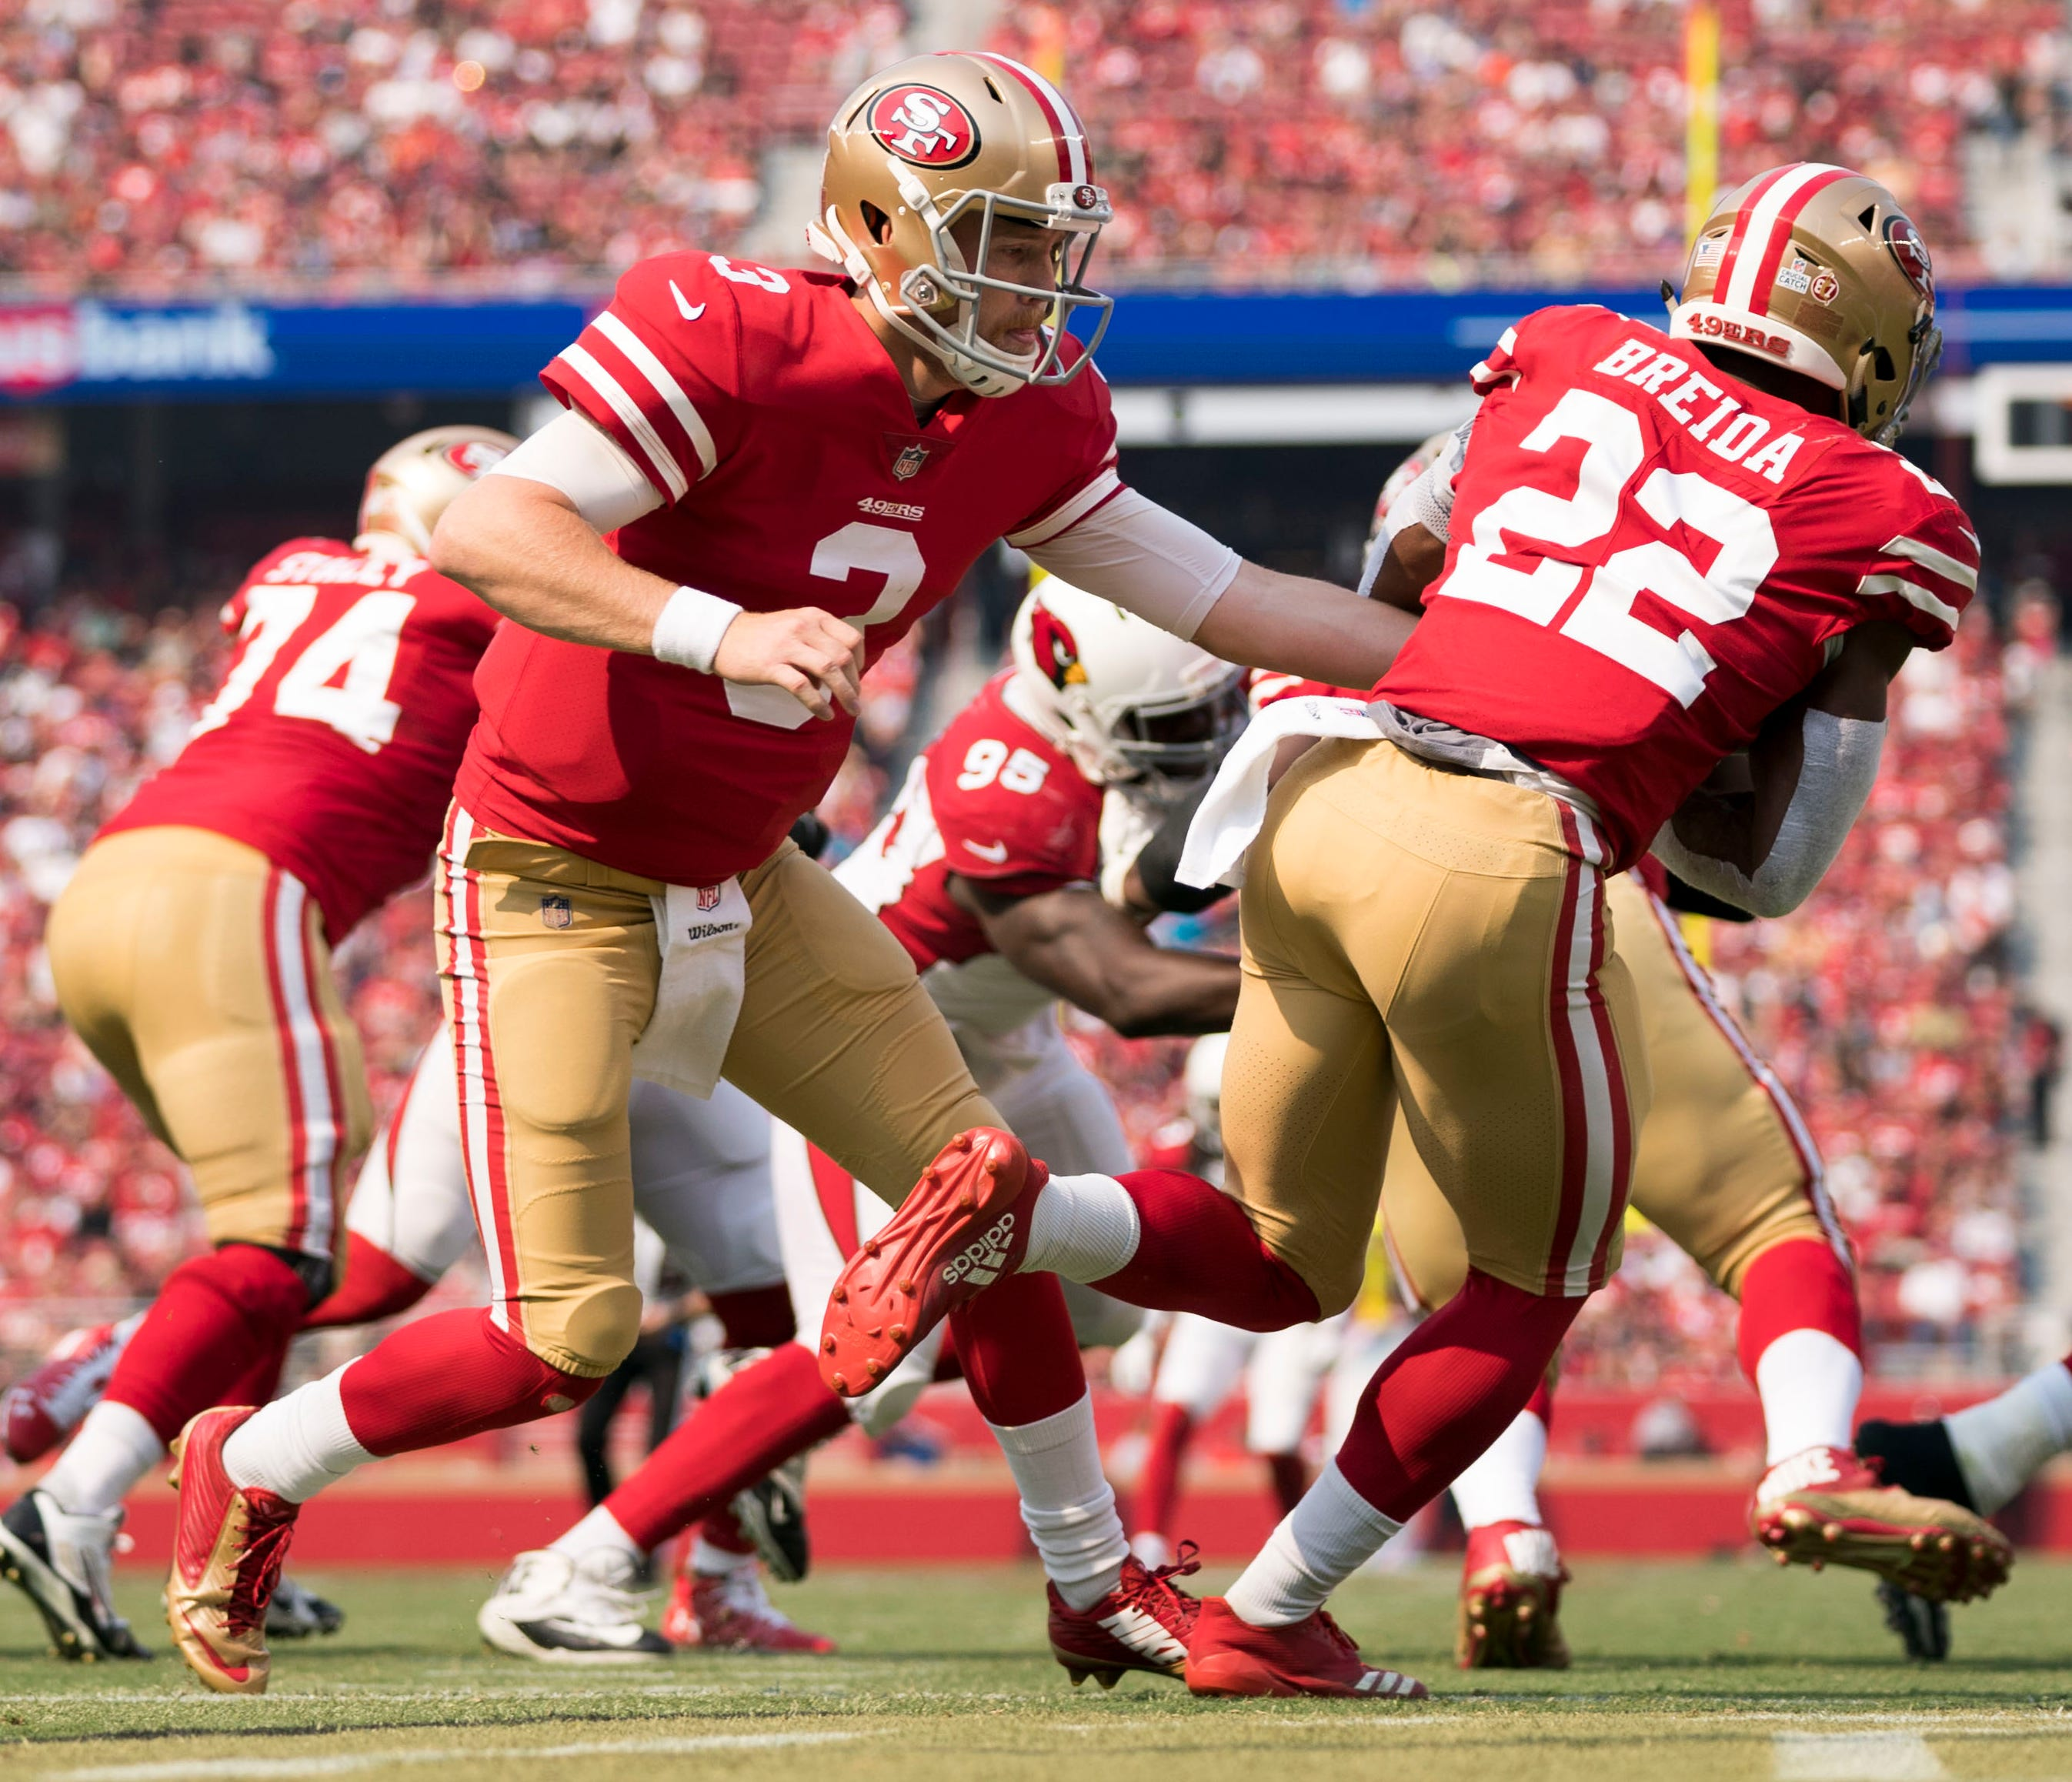 32. 49ers (30): Bravo to the NFL for implementing a scheduling provision that allows it to flex games earlier in the schedule ... otherwise you would've seen Niners in prime time four of next five weeks.